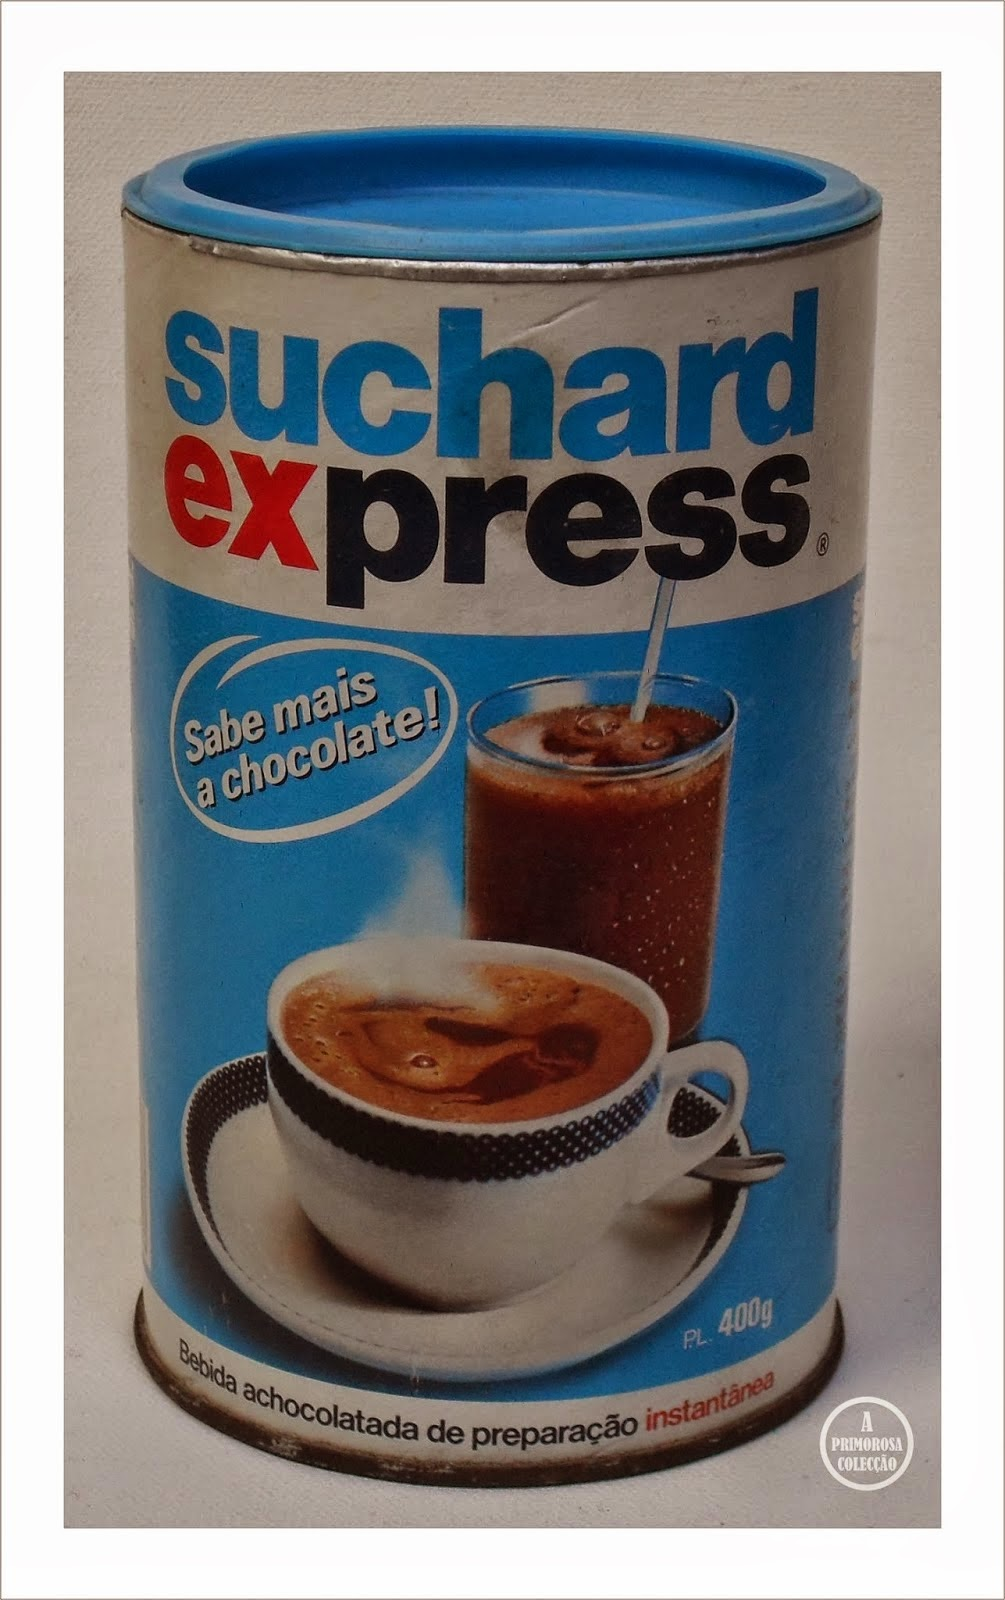 Suchard Express